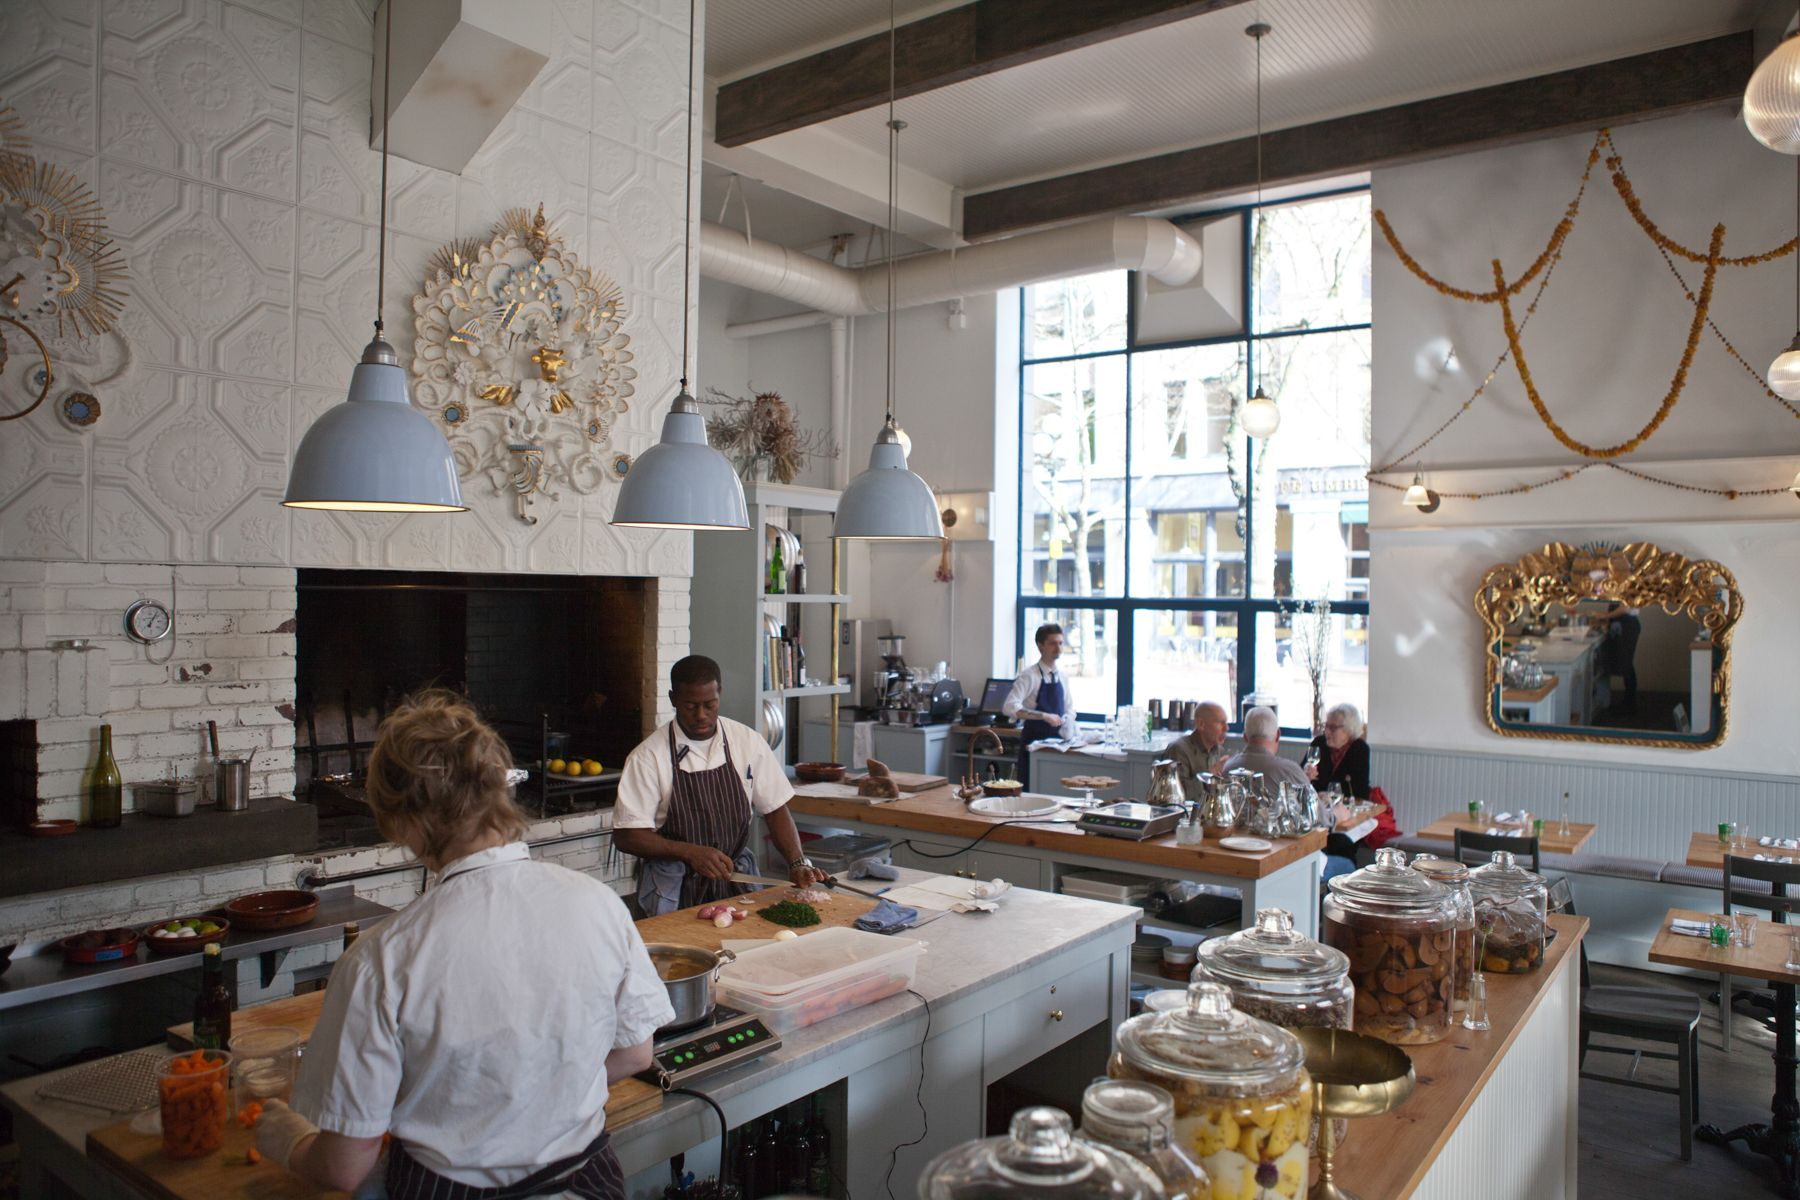 Restaurant kitchen design  SEATTLE BAR SAJOR Words by Sarah Rowland Photographs by Michael A